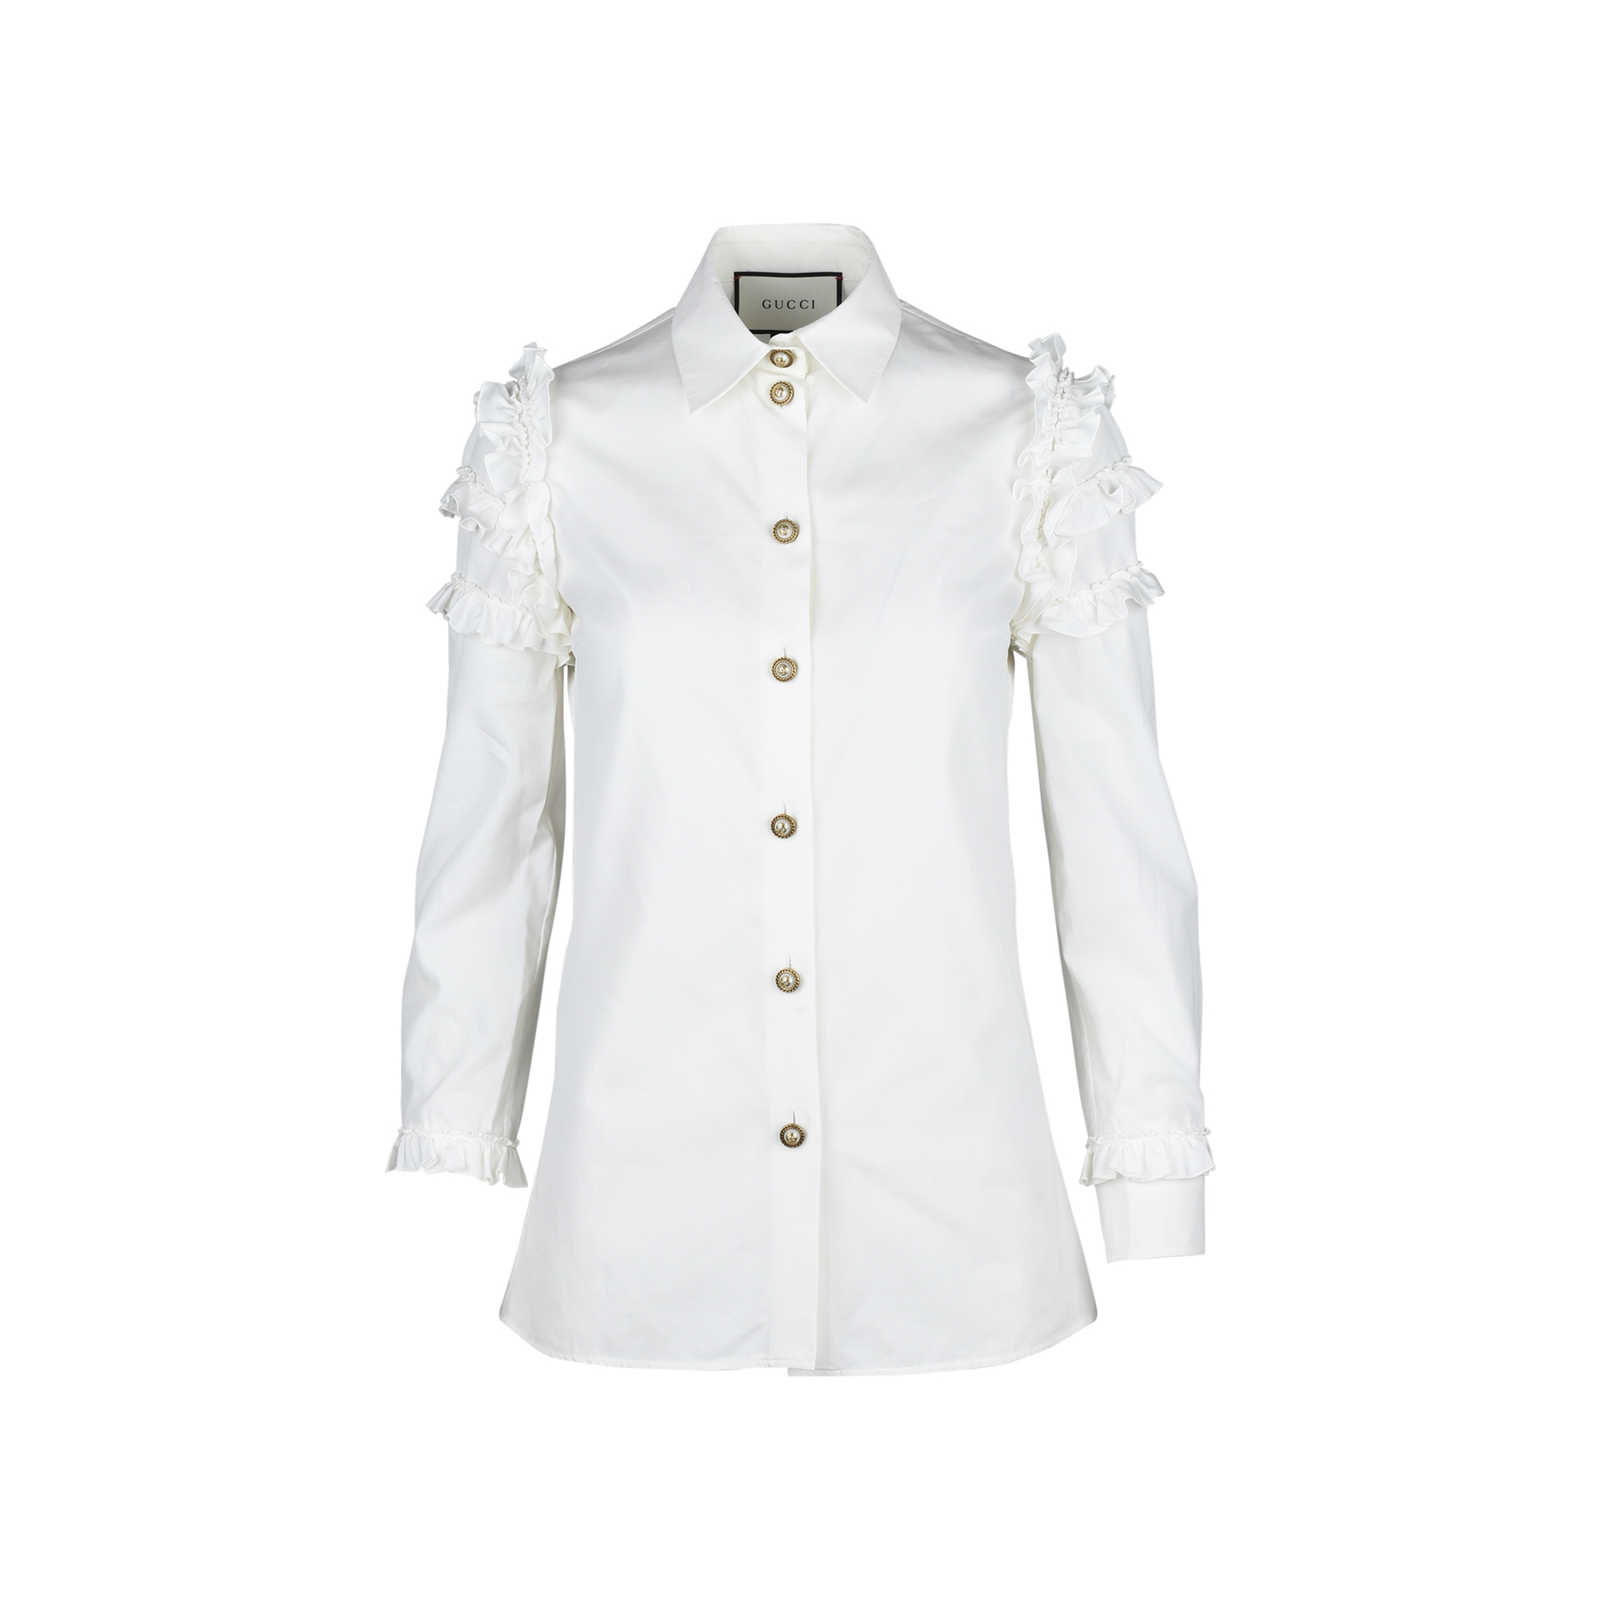 512b65033f2 Authentic Second Hand Gucci Ruffled Sleeve Shirt (PSS-051-00222) -  Thumbnail ...